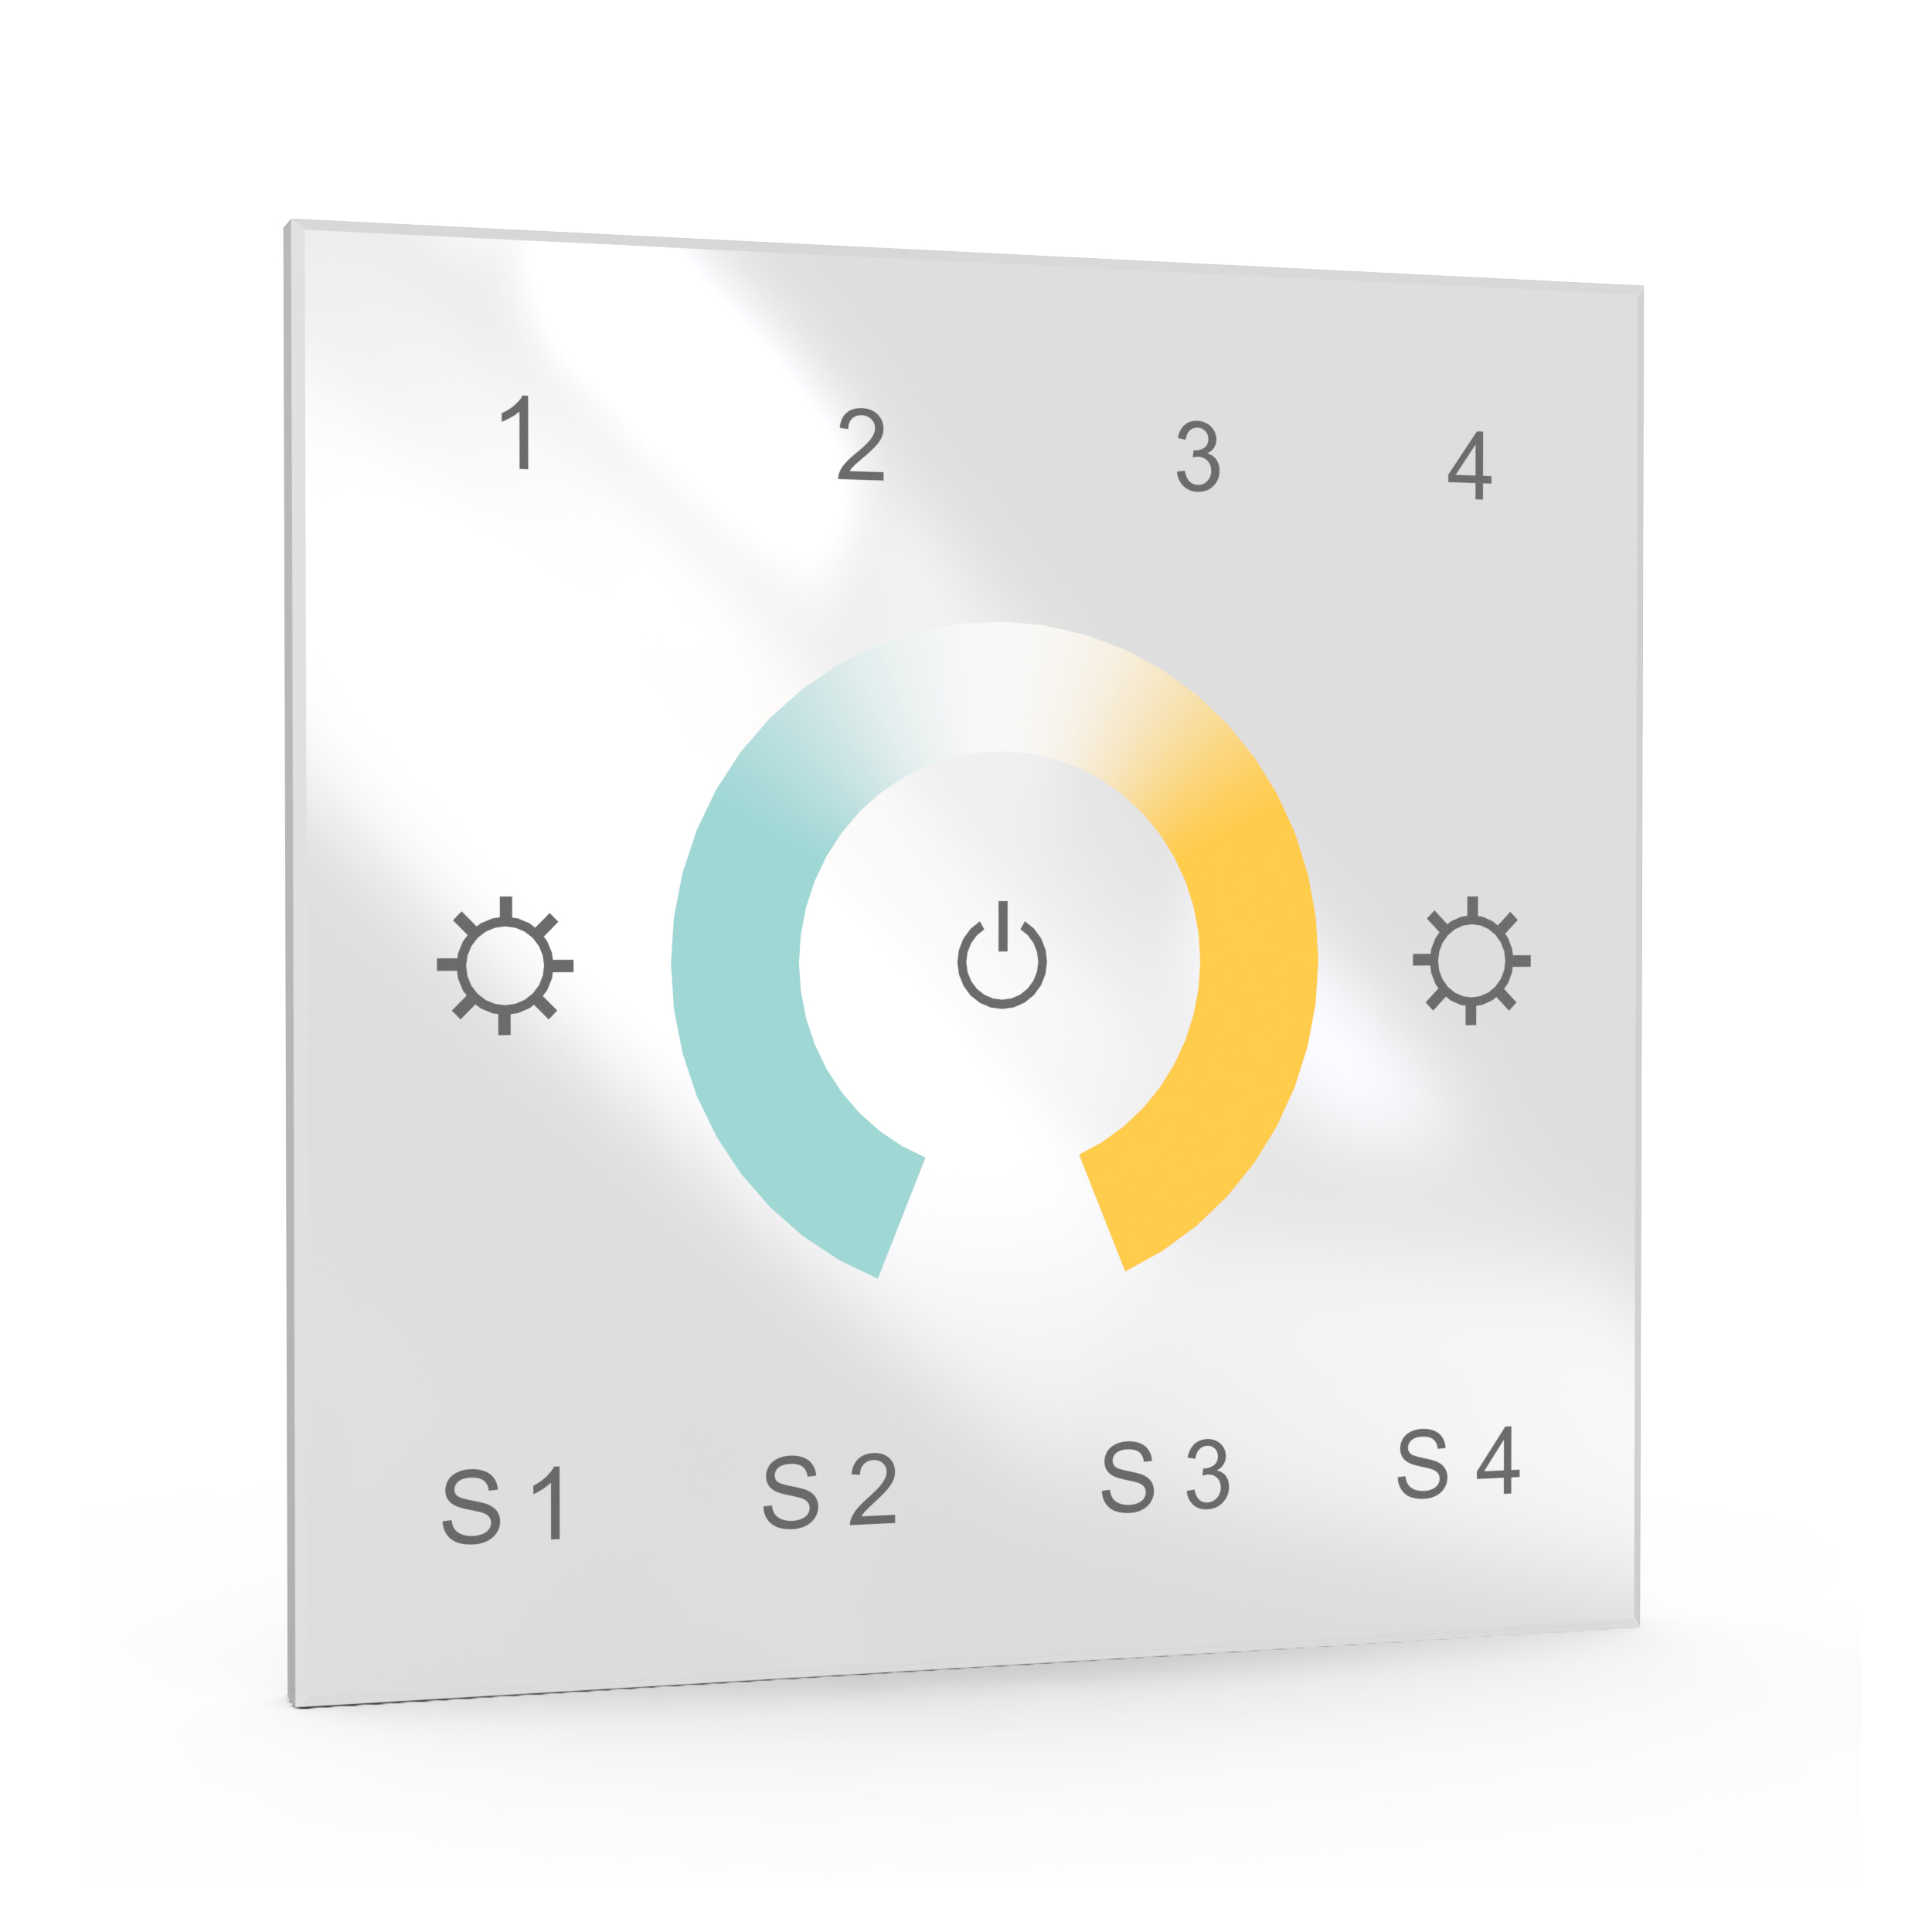 Multizone ZigBee touch controller for CCT LEDs